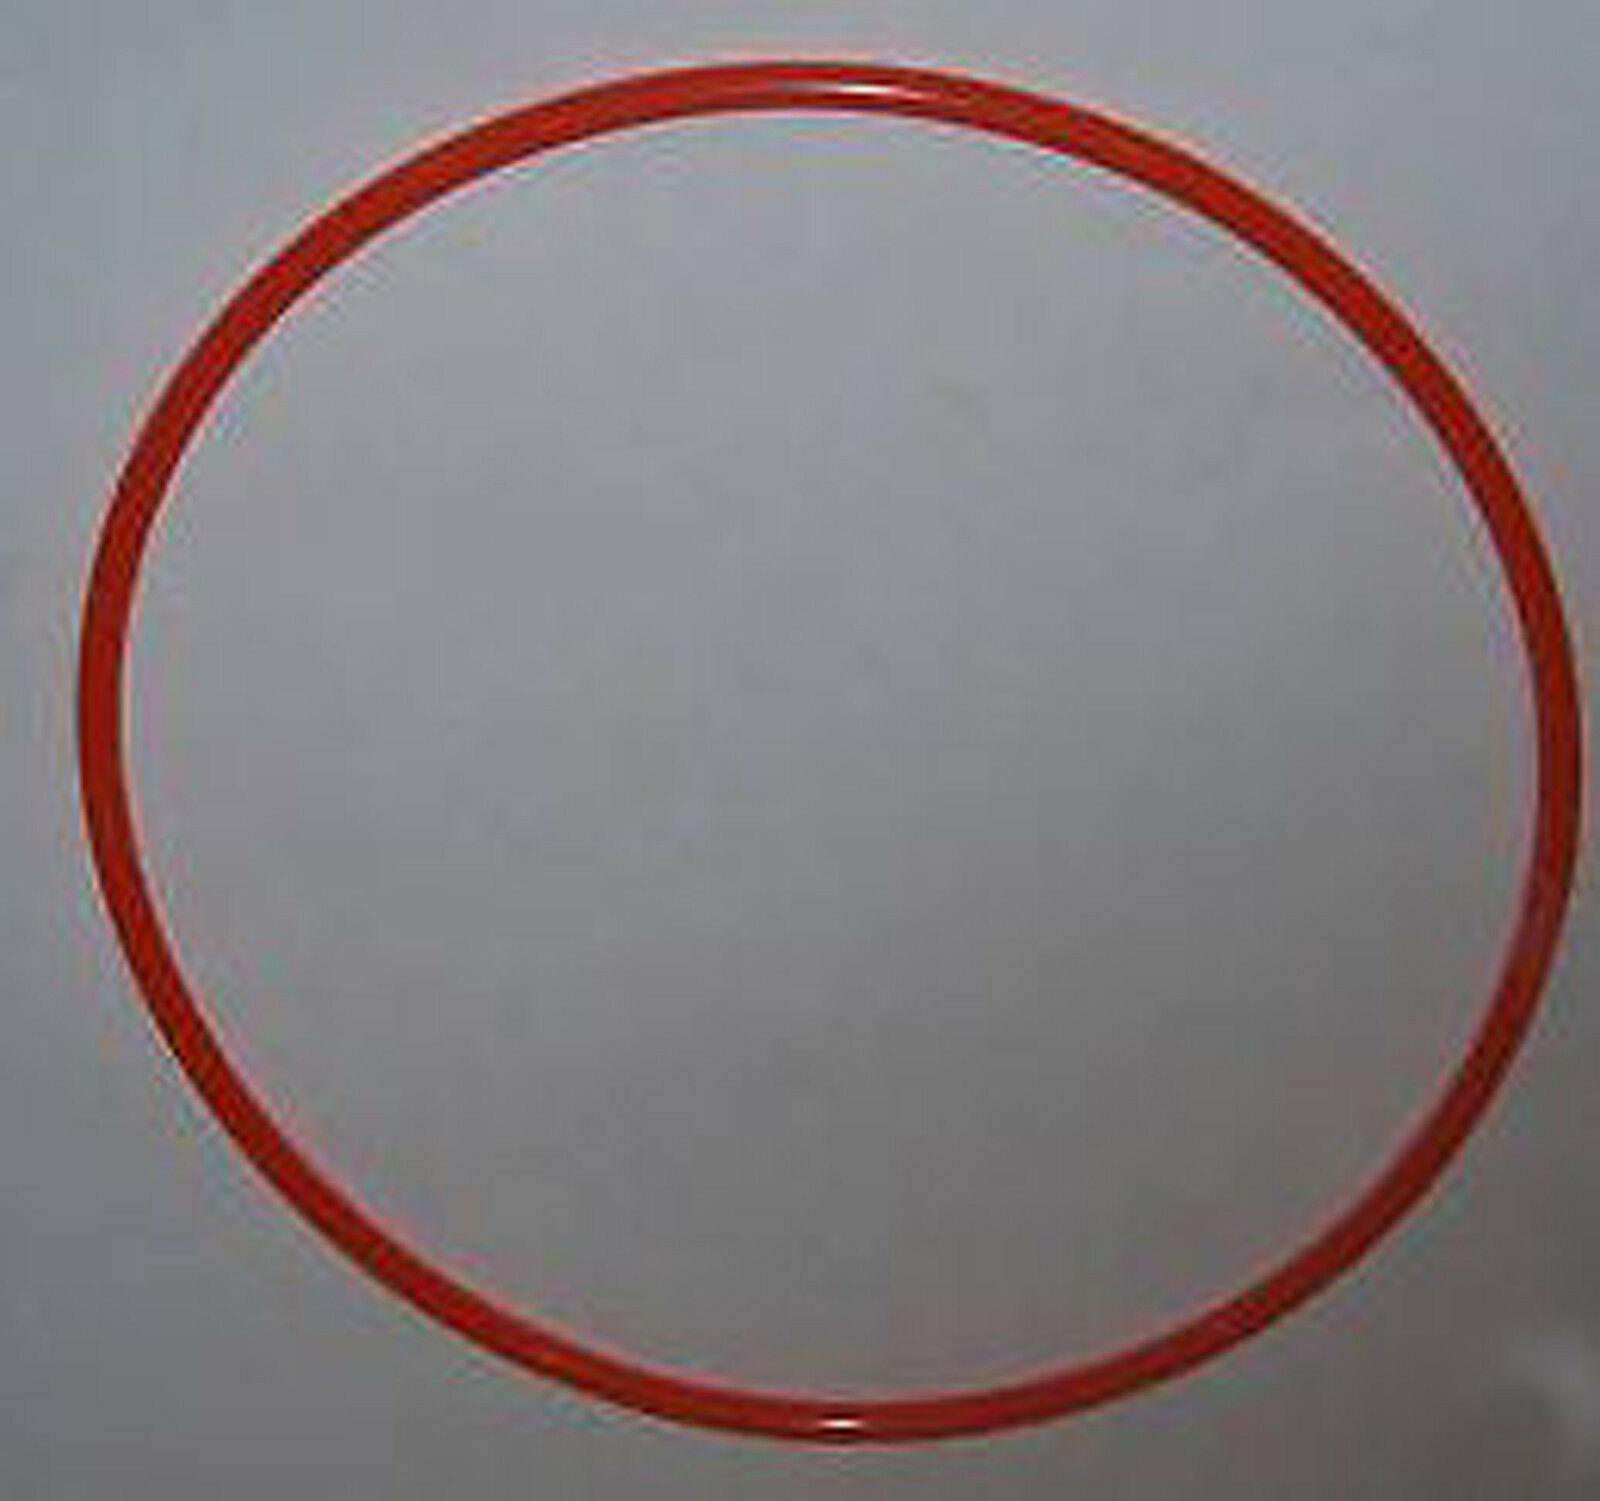 "Primary image for 1/4"" Round Urethane Drive Belt  HAMILTON Drill Press No Model No."